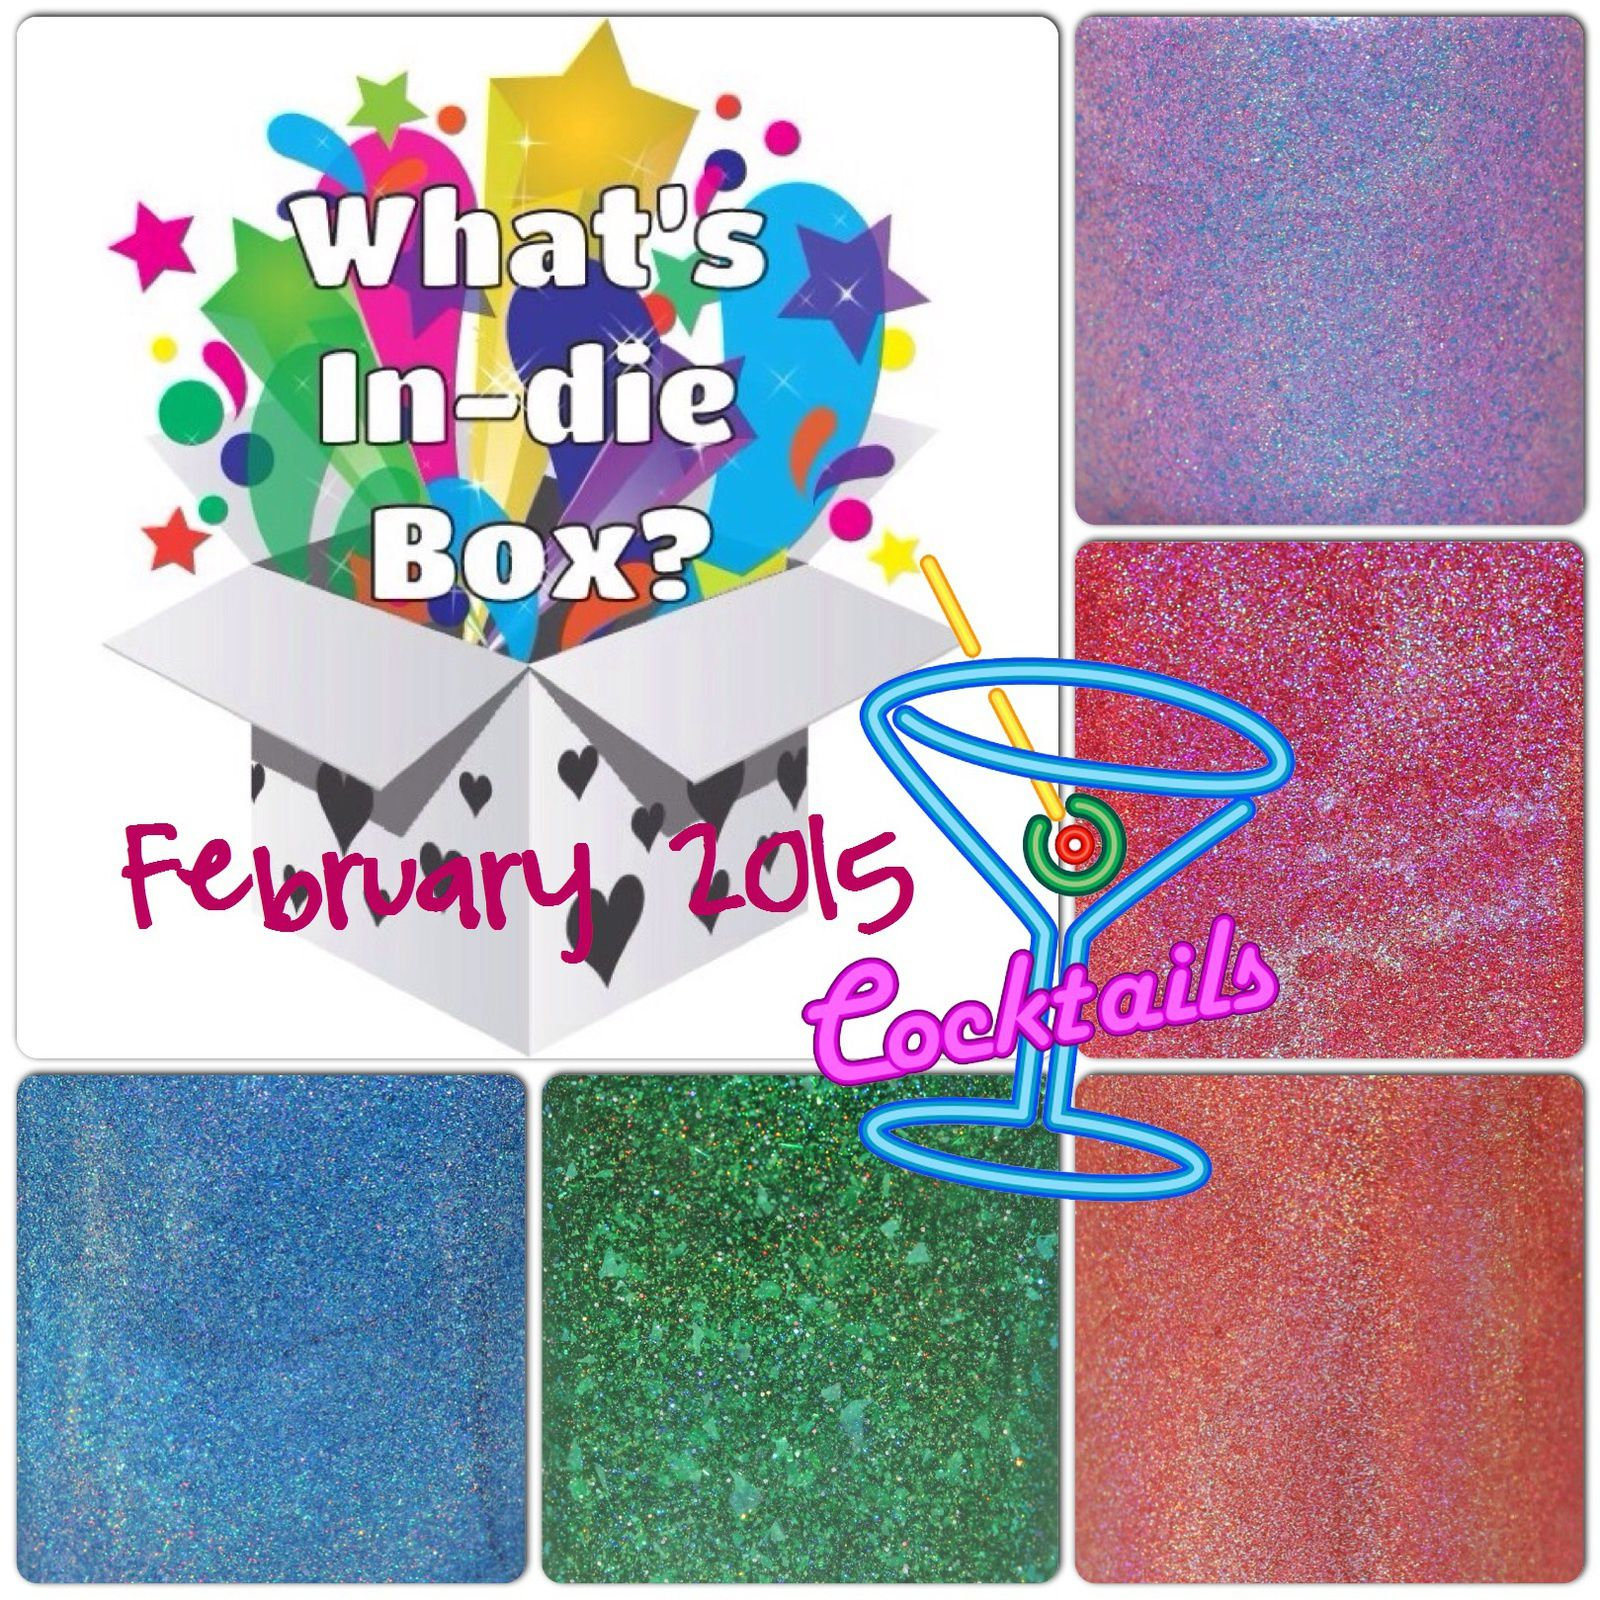 What's Indie Box - February 2015 - Cocktails